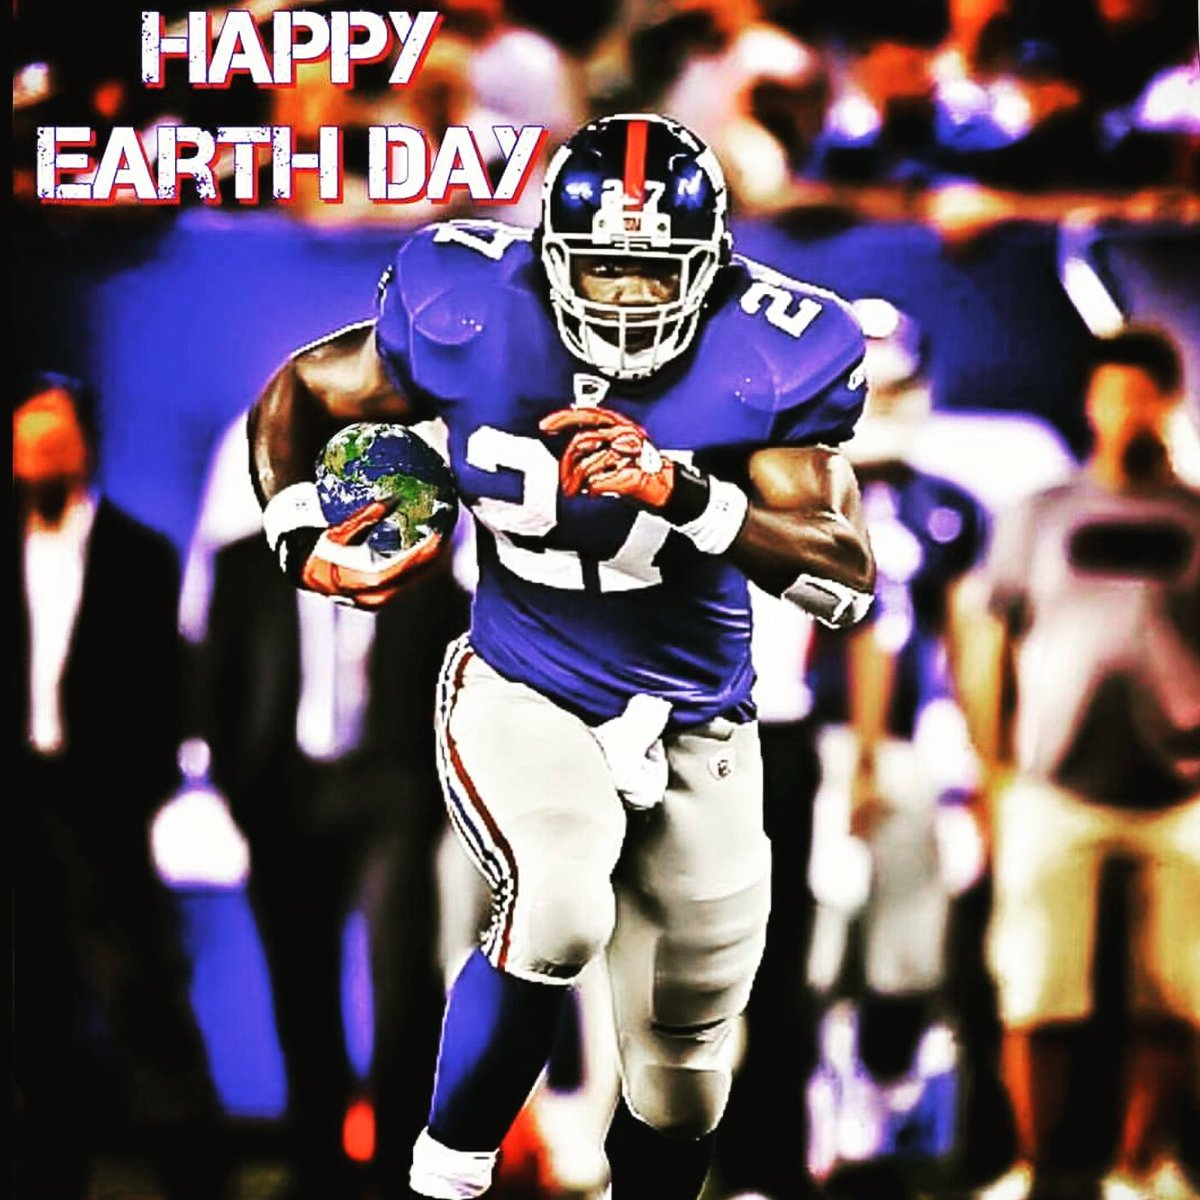 HAPPY EARTH DAY #GIANTS #GiantsPride <br>http://pic.twitter.com/BFj3UKDEuy